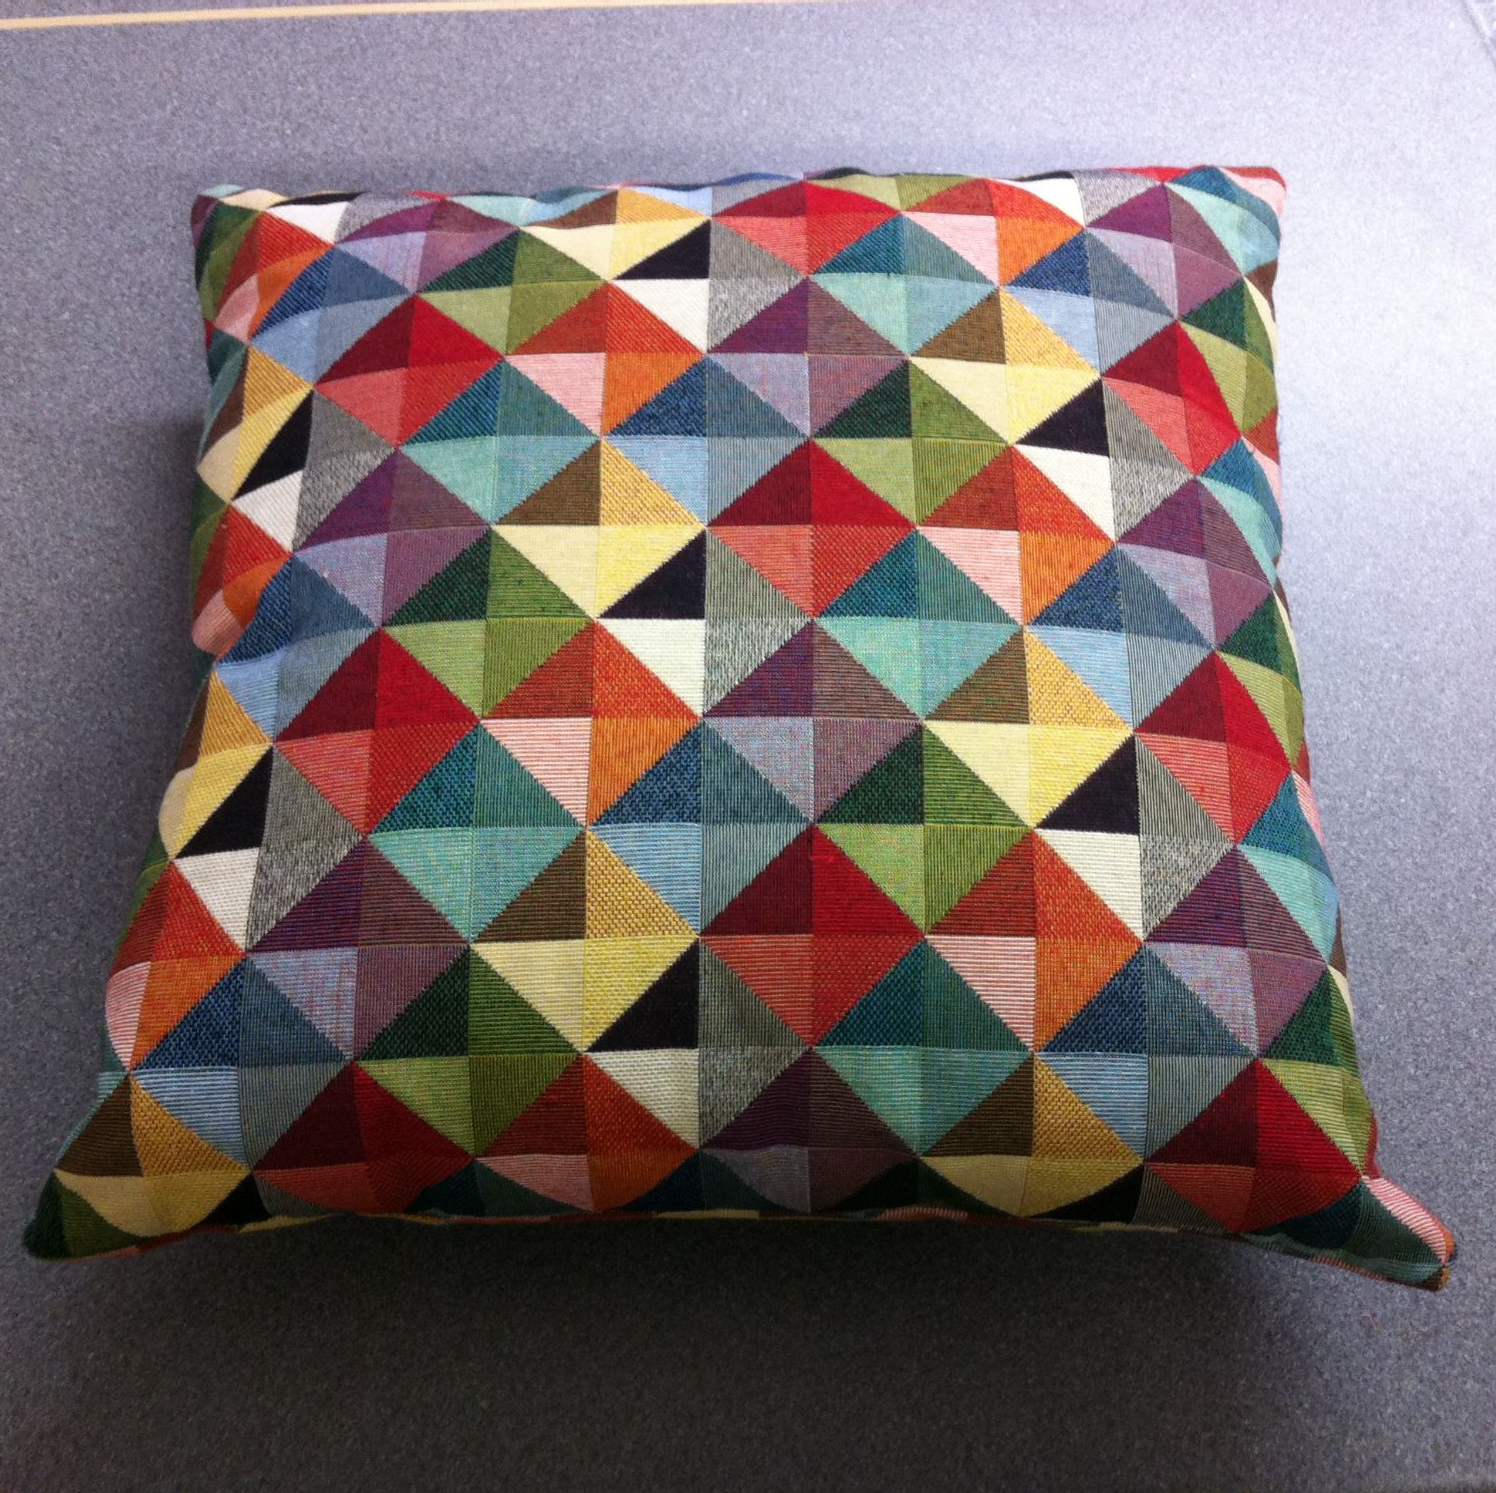 Debby's Patch retro cushion